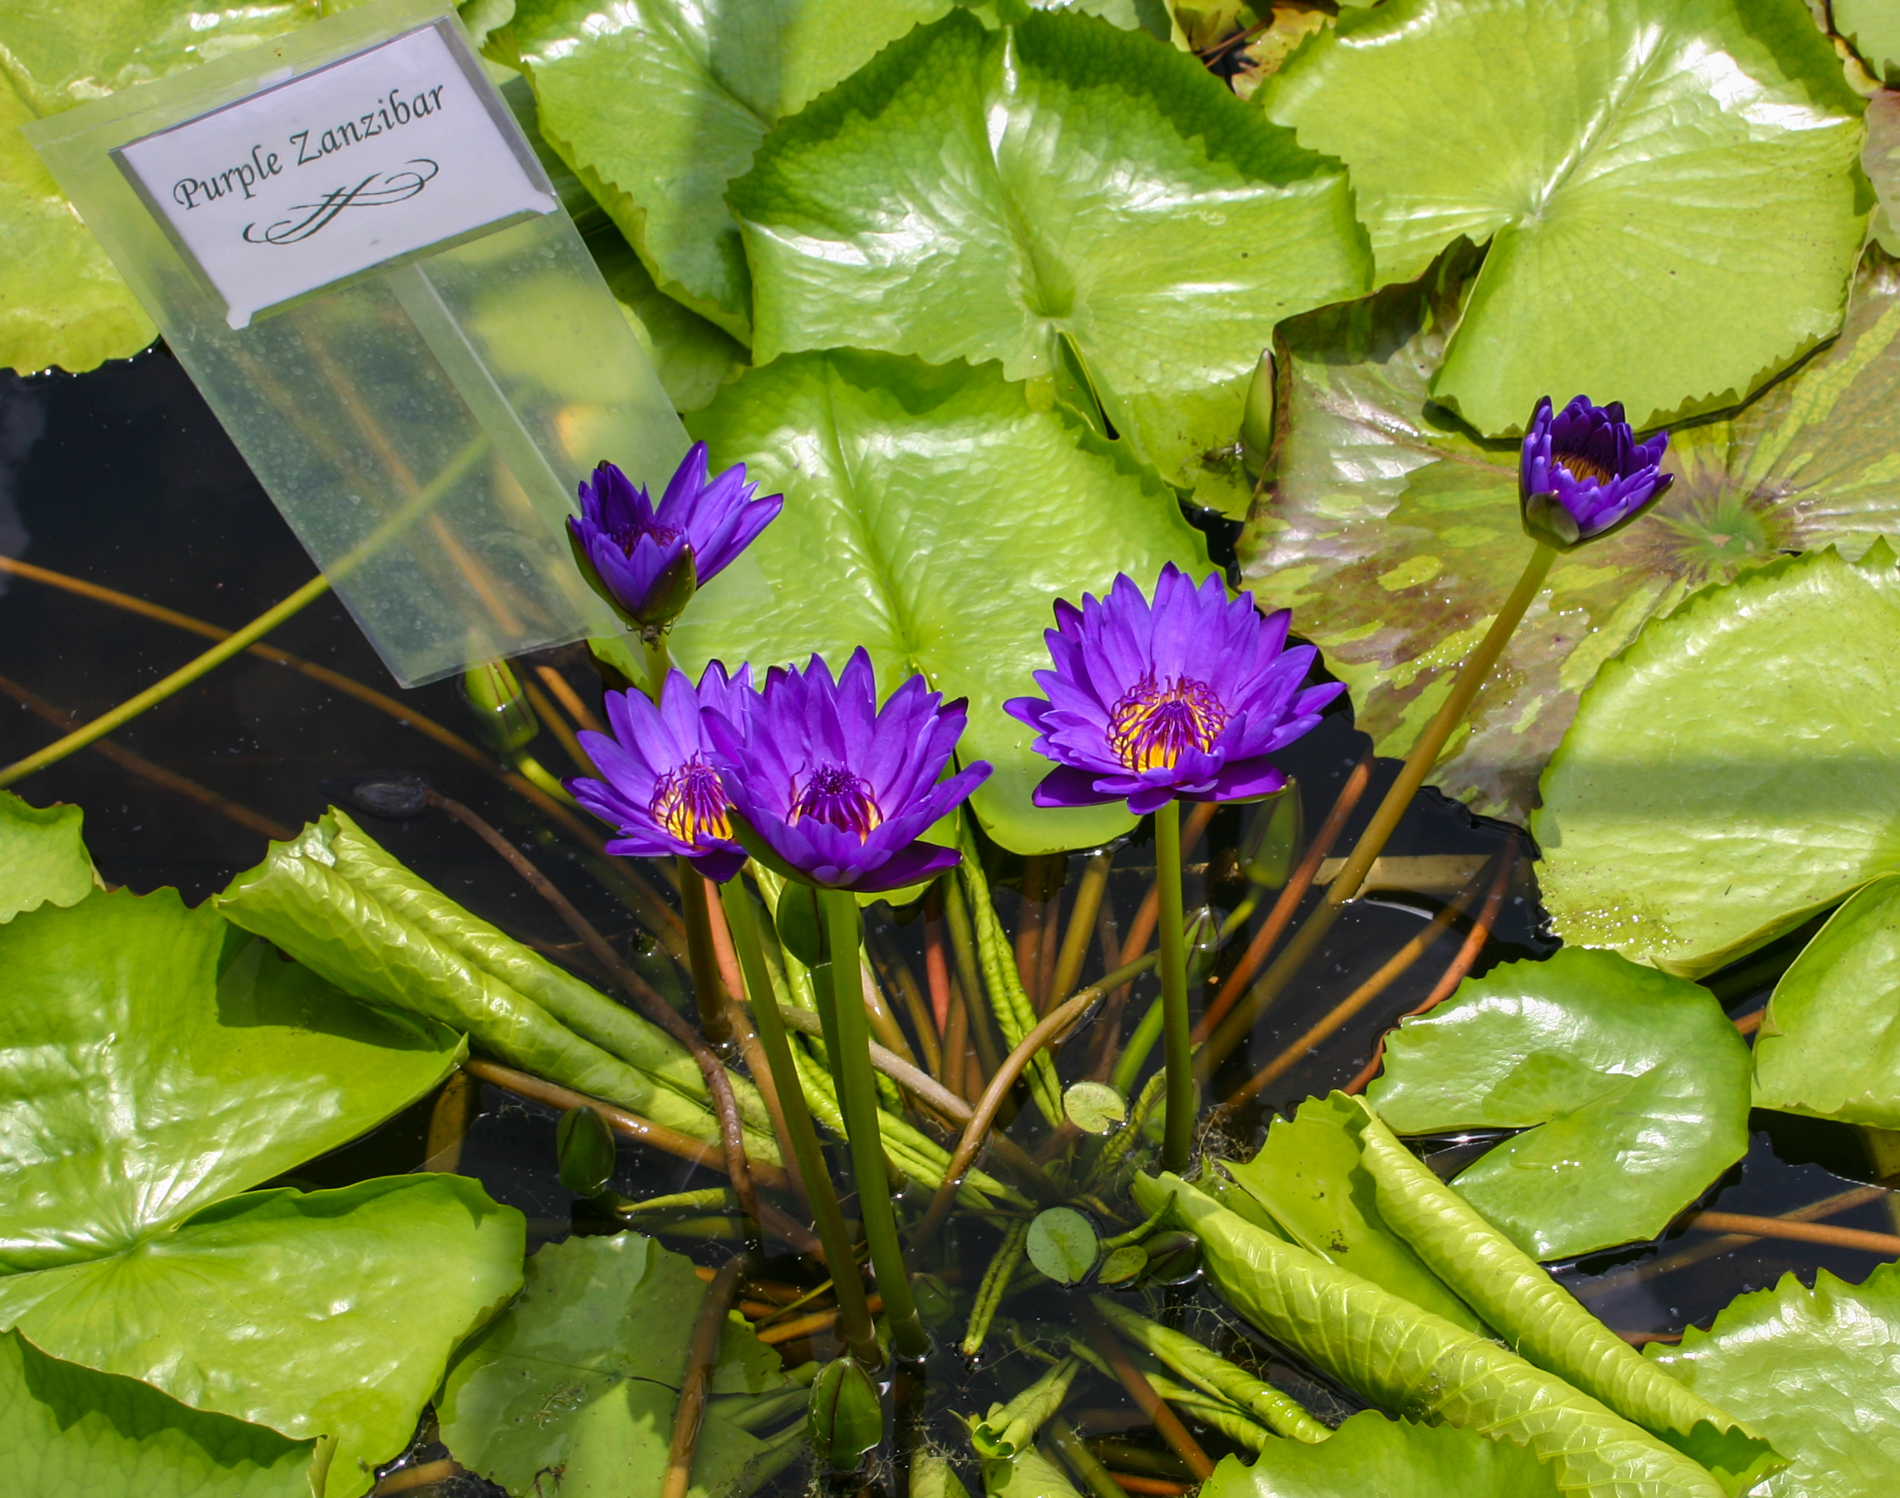 Nymphaea 'Purple Zanzibar' 3 (1 of 1).jpg